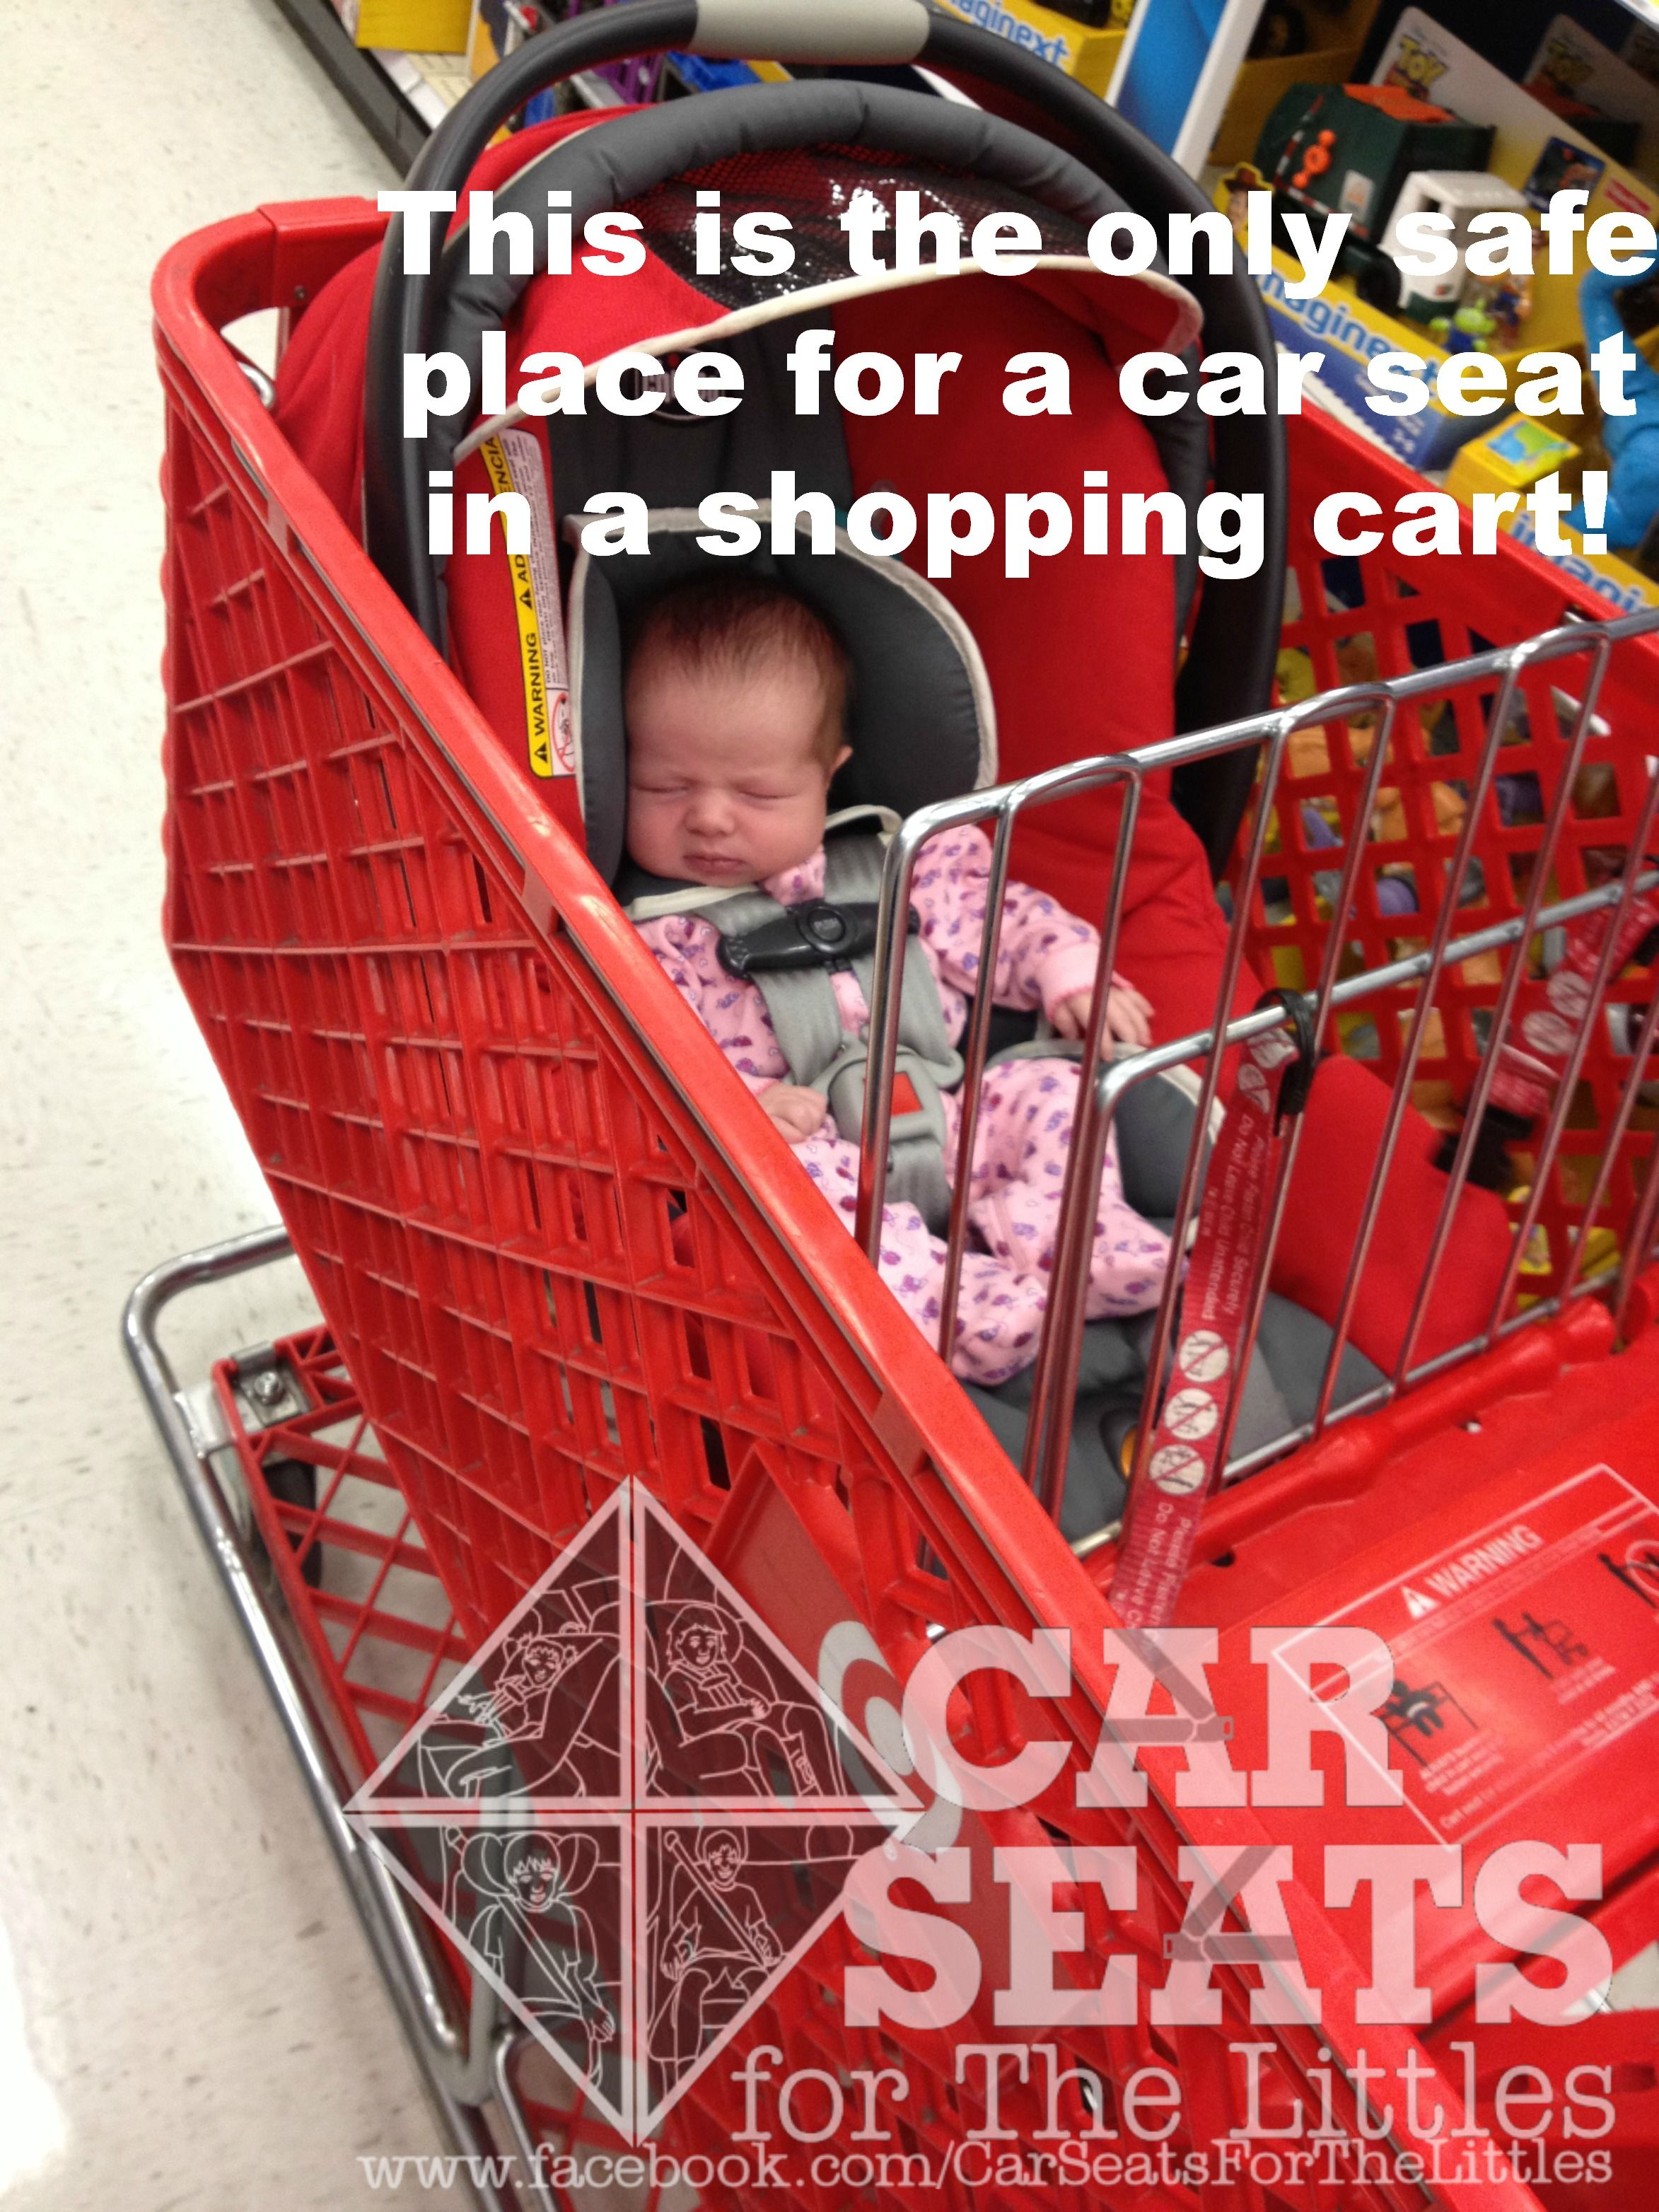 Please Dont Put Your Infant Car Seat On Top Of A Shopping Cart Many Babies Have Been Seriously Injured When Their Falls From The